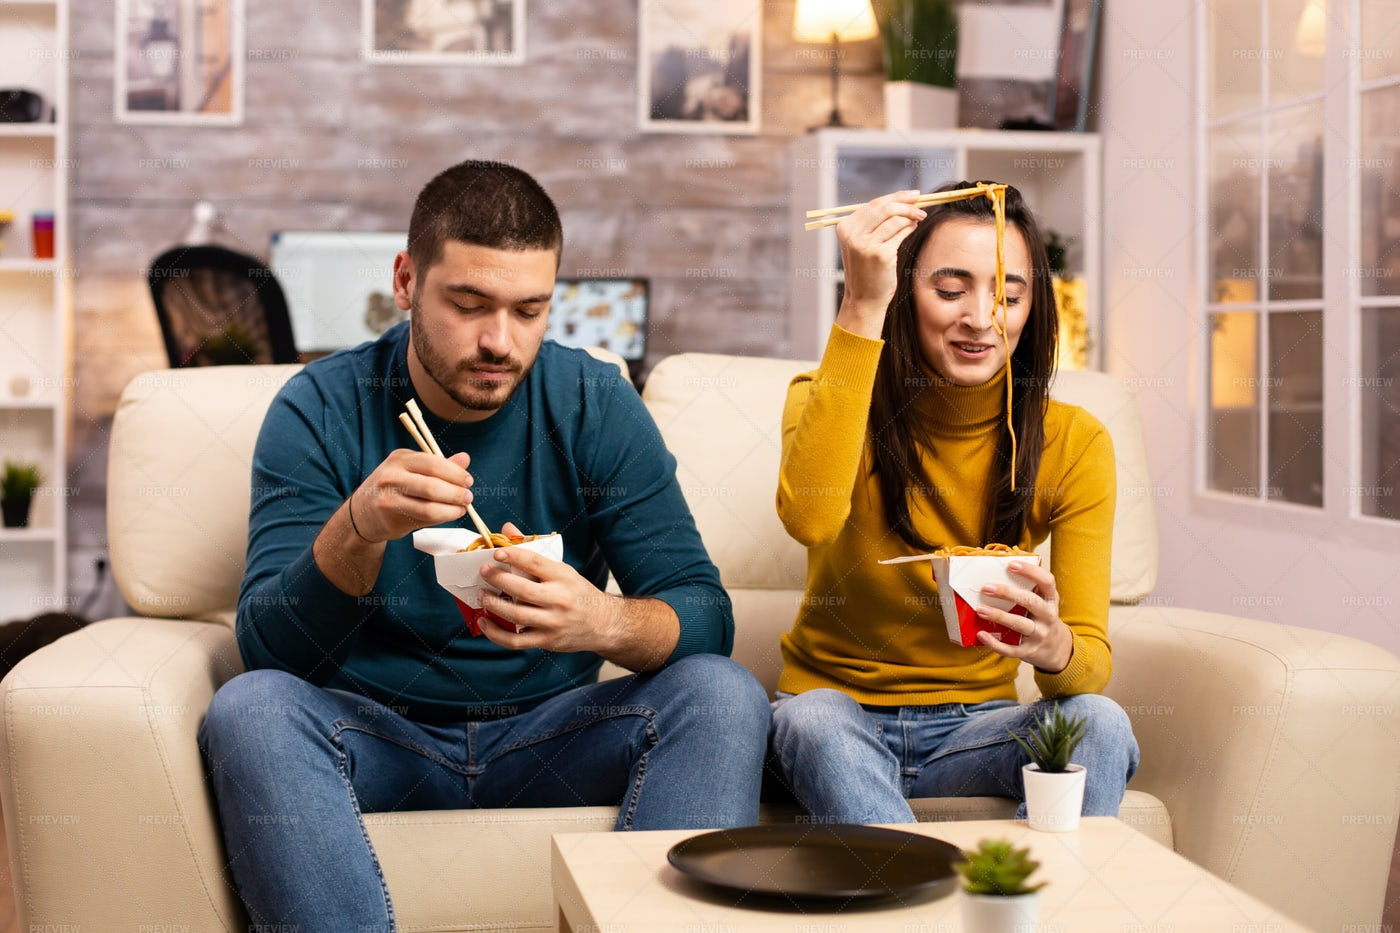 Fun And Chinese Food: Stock Photos